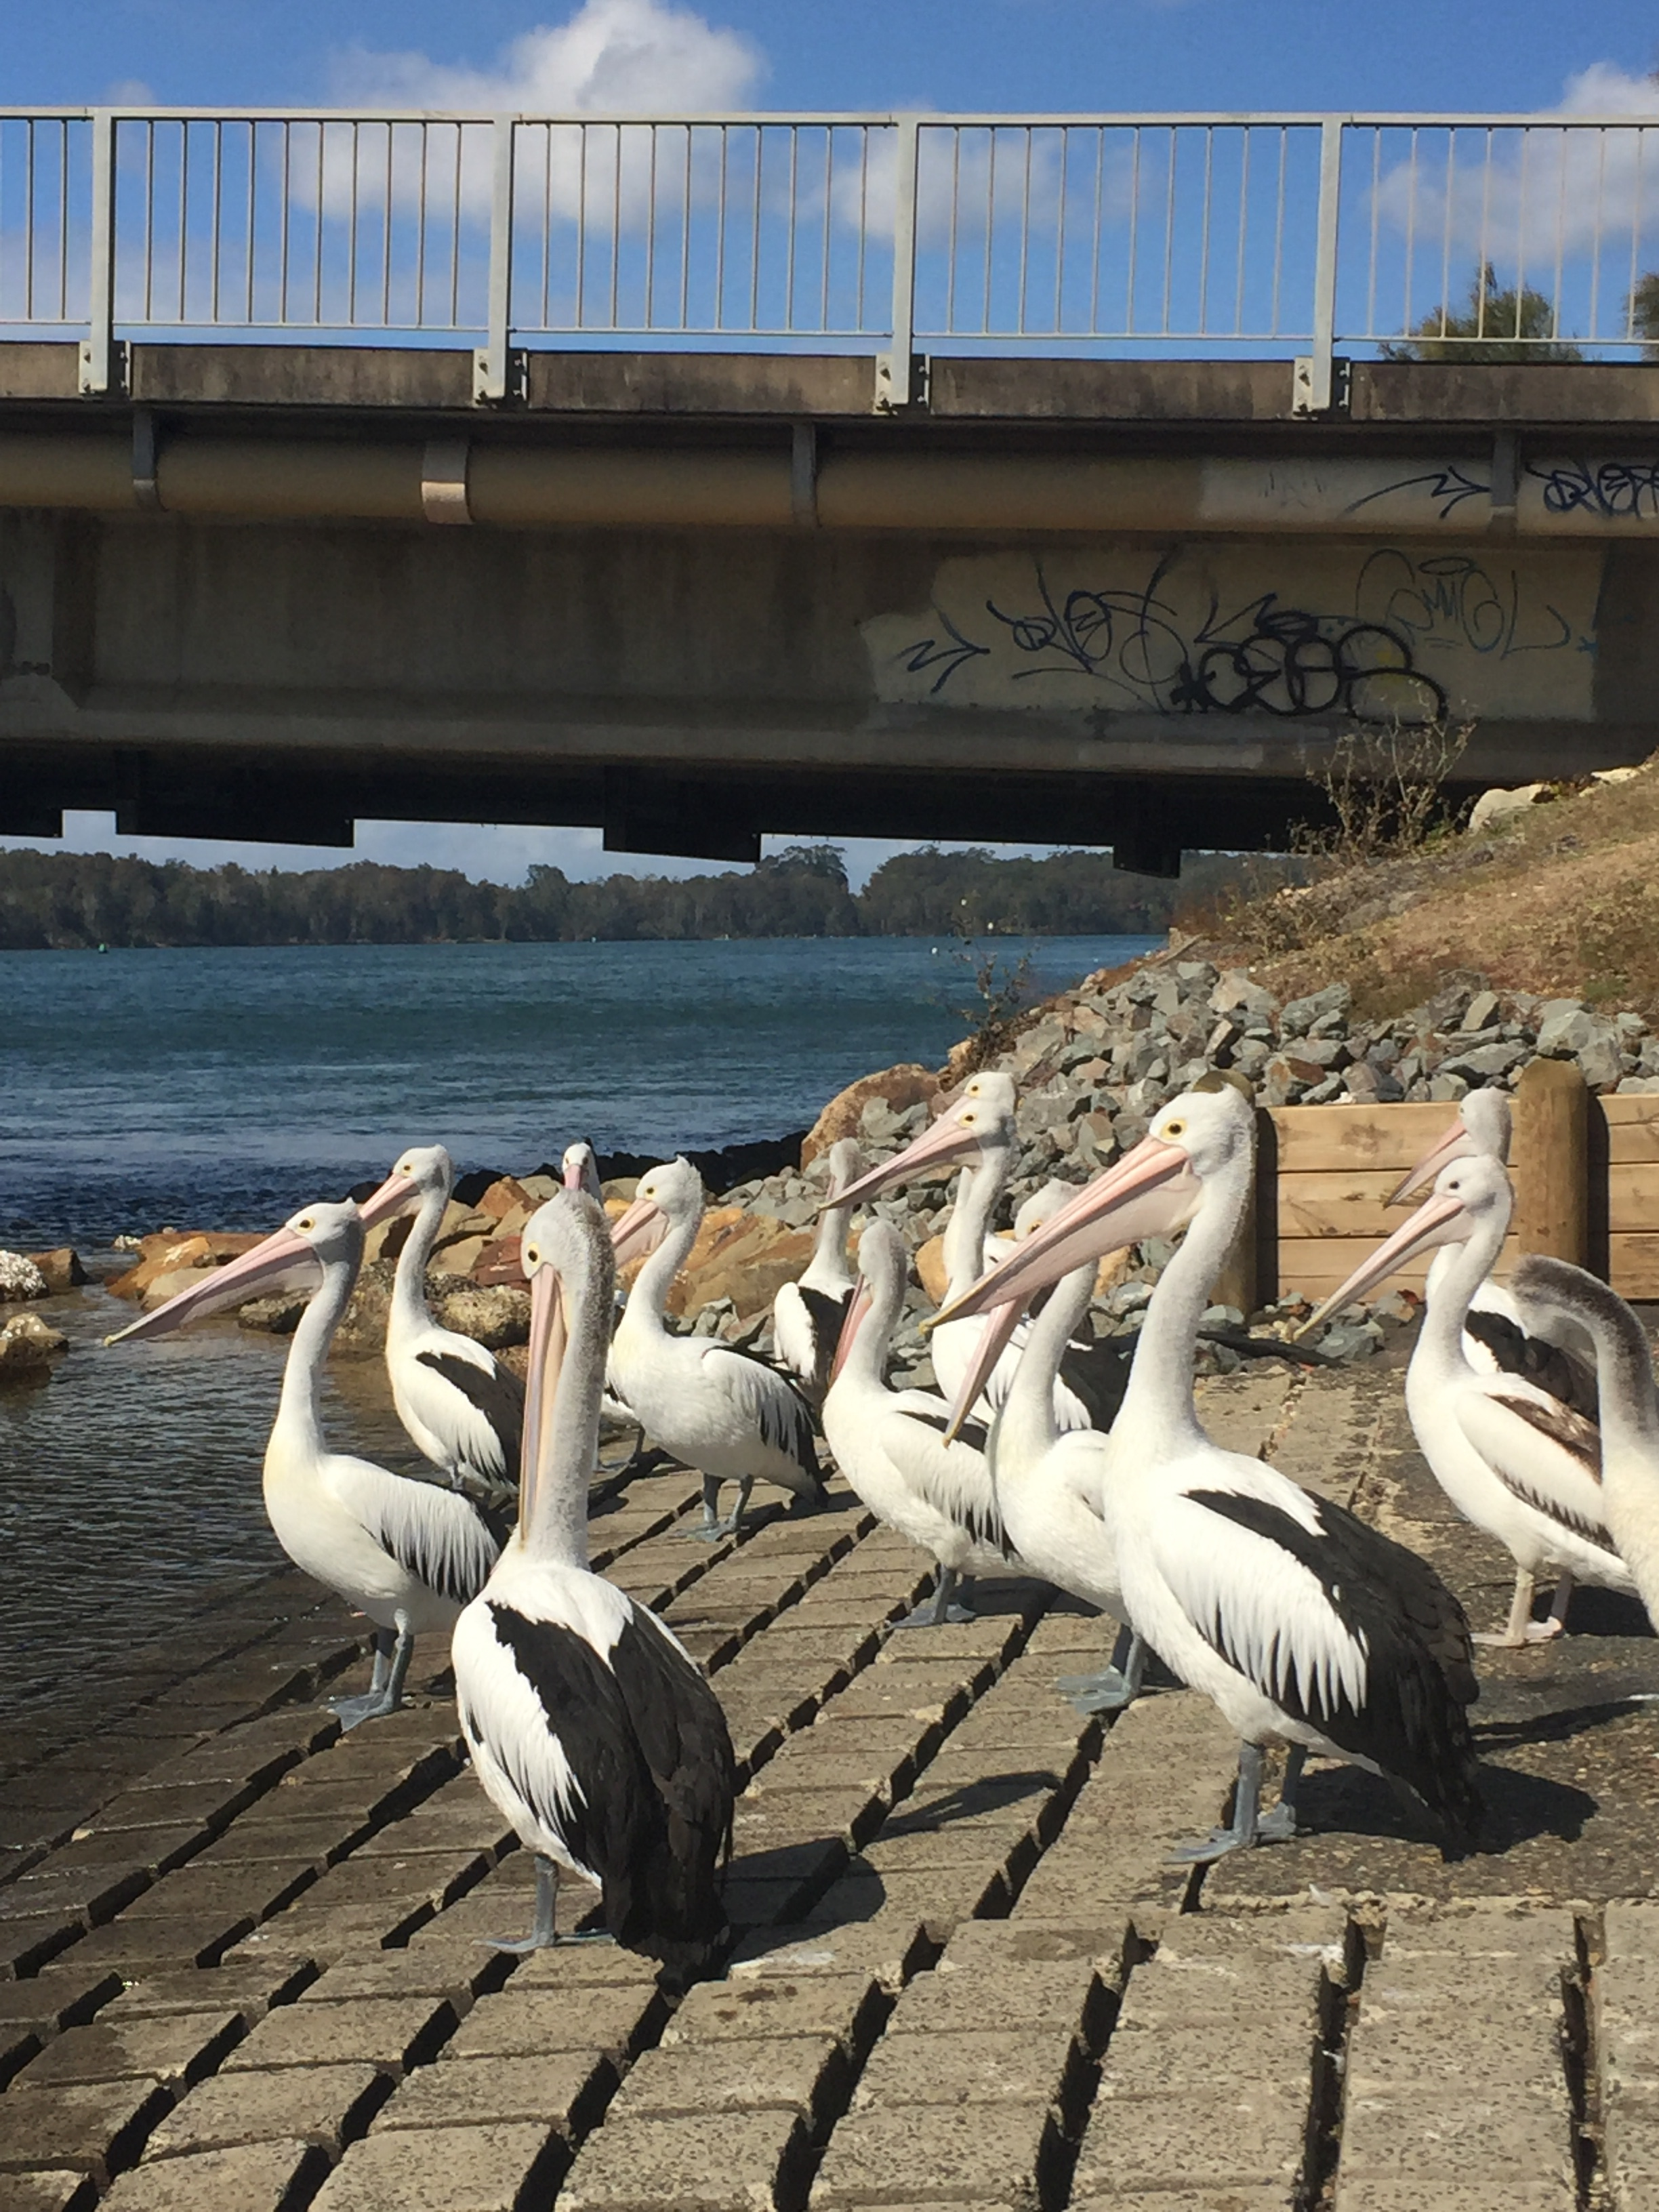 Pelicans. Lots of pelicans on a river bank near the water. Behind them is a bridge with white paint and graffiti.